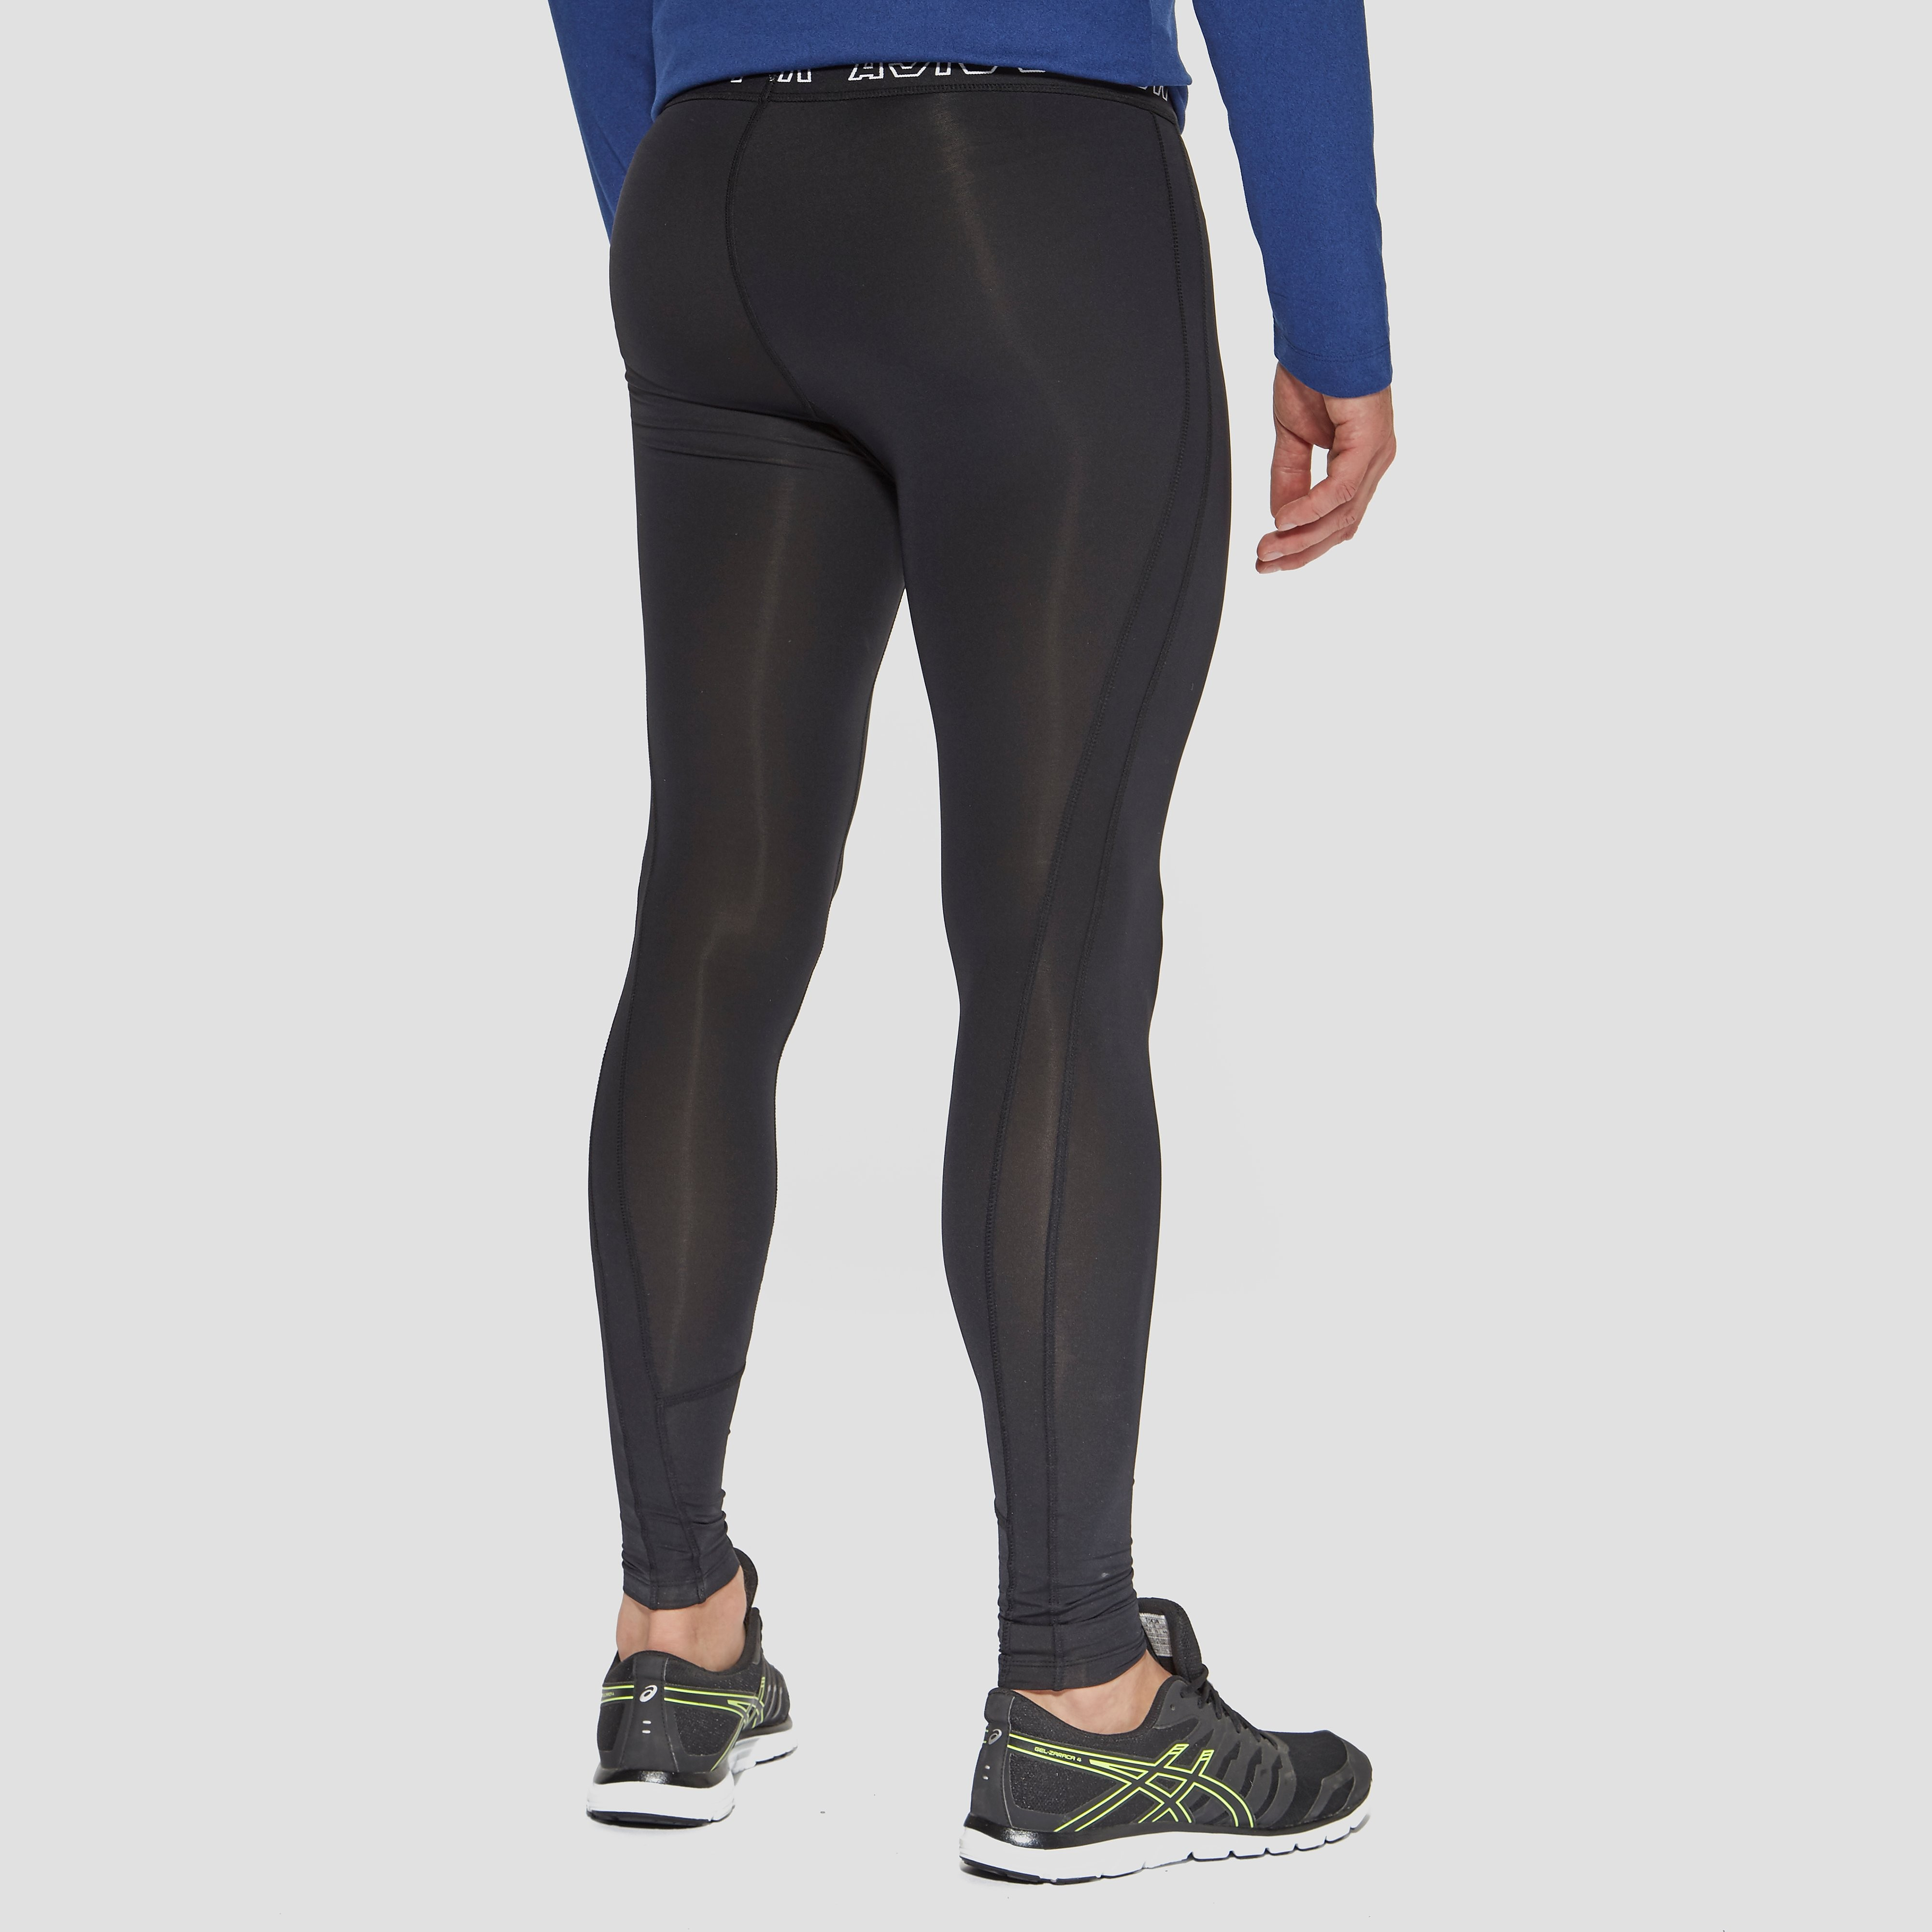 ASICS Performance Base Men's Running Tights